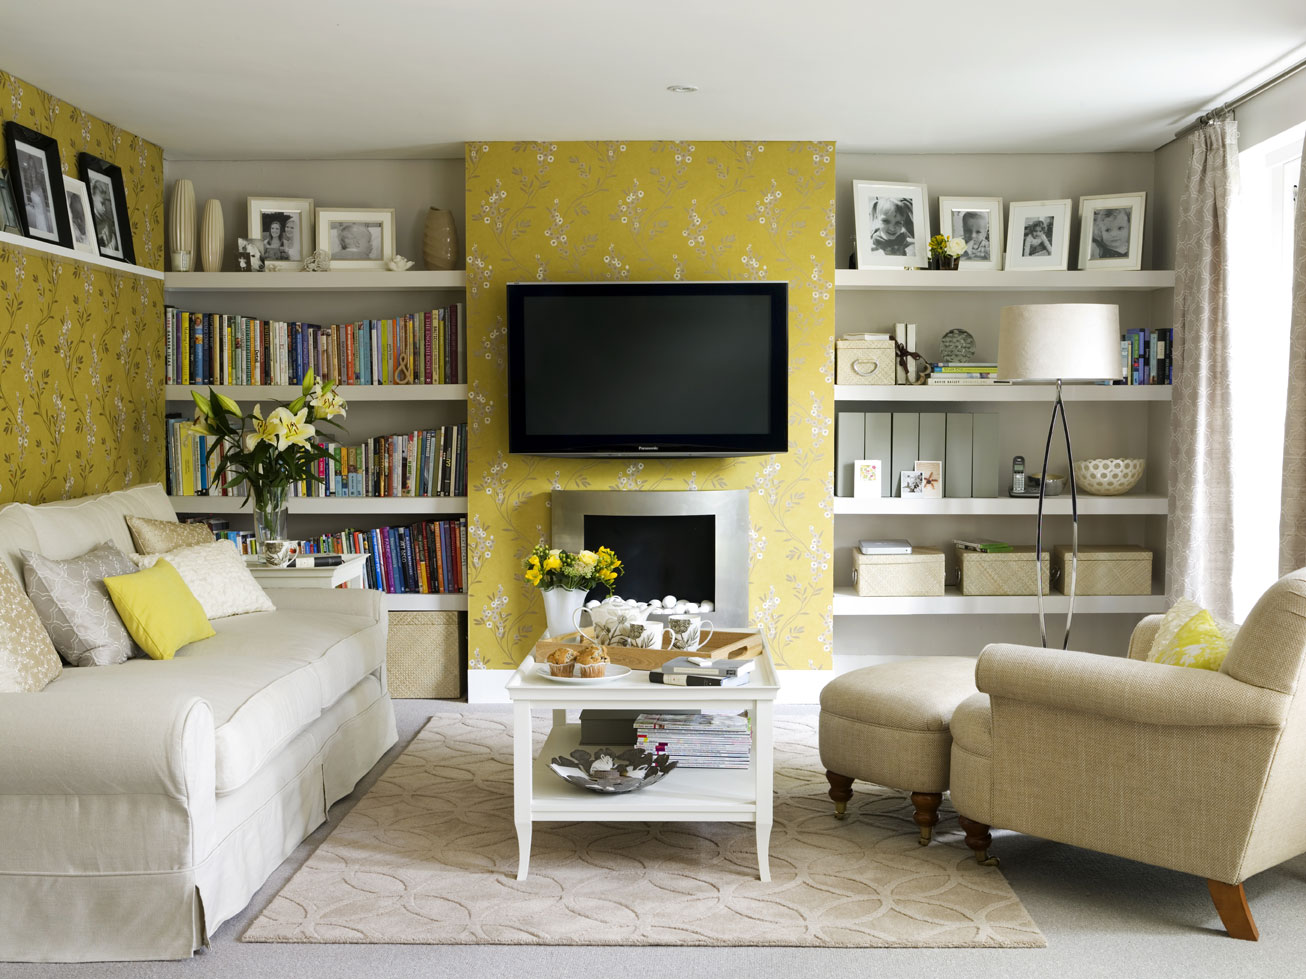 yellow room interior inspiration 55 rooms for your viewing pleasure - Yellow Living Room Decor